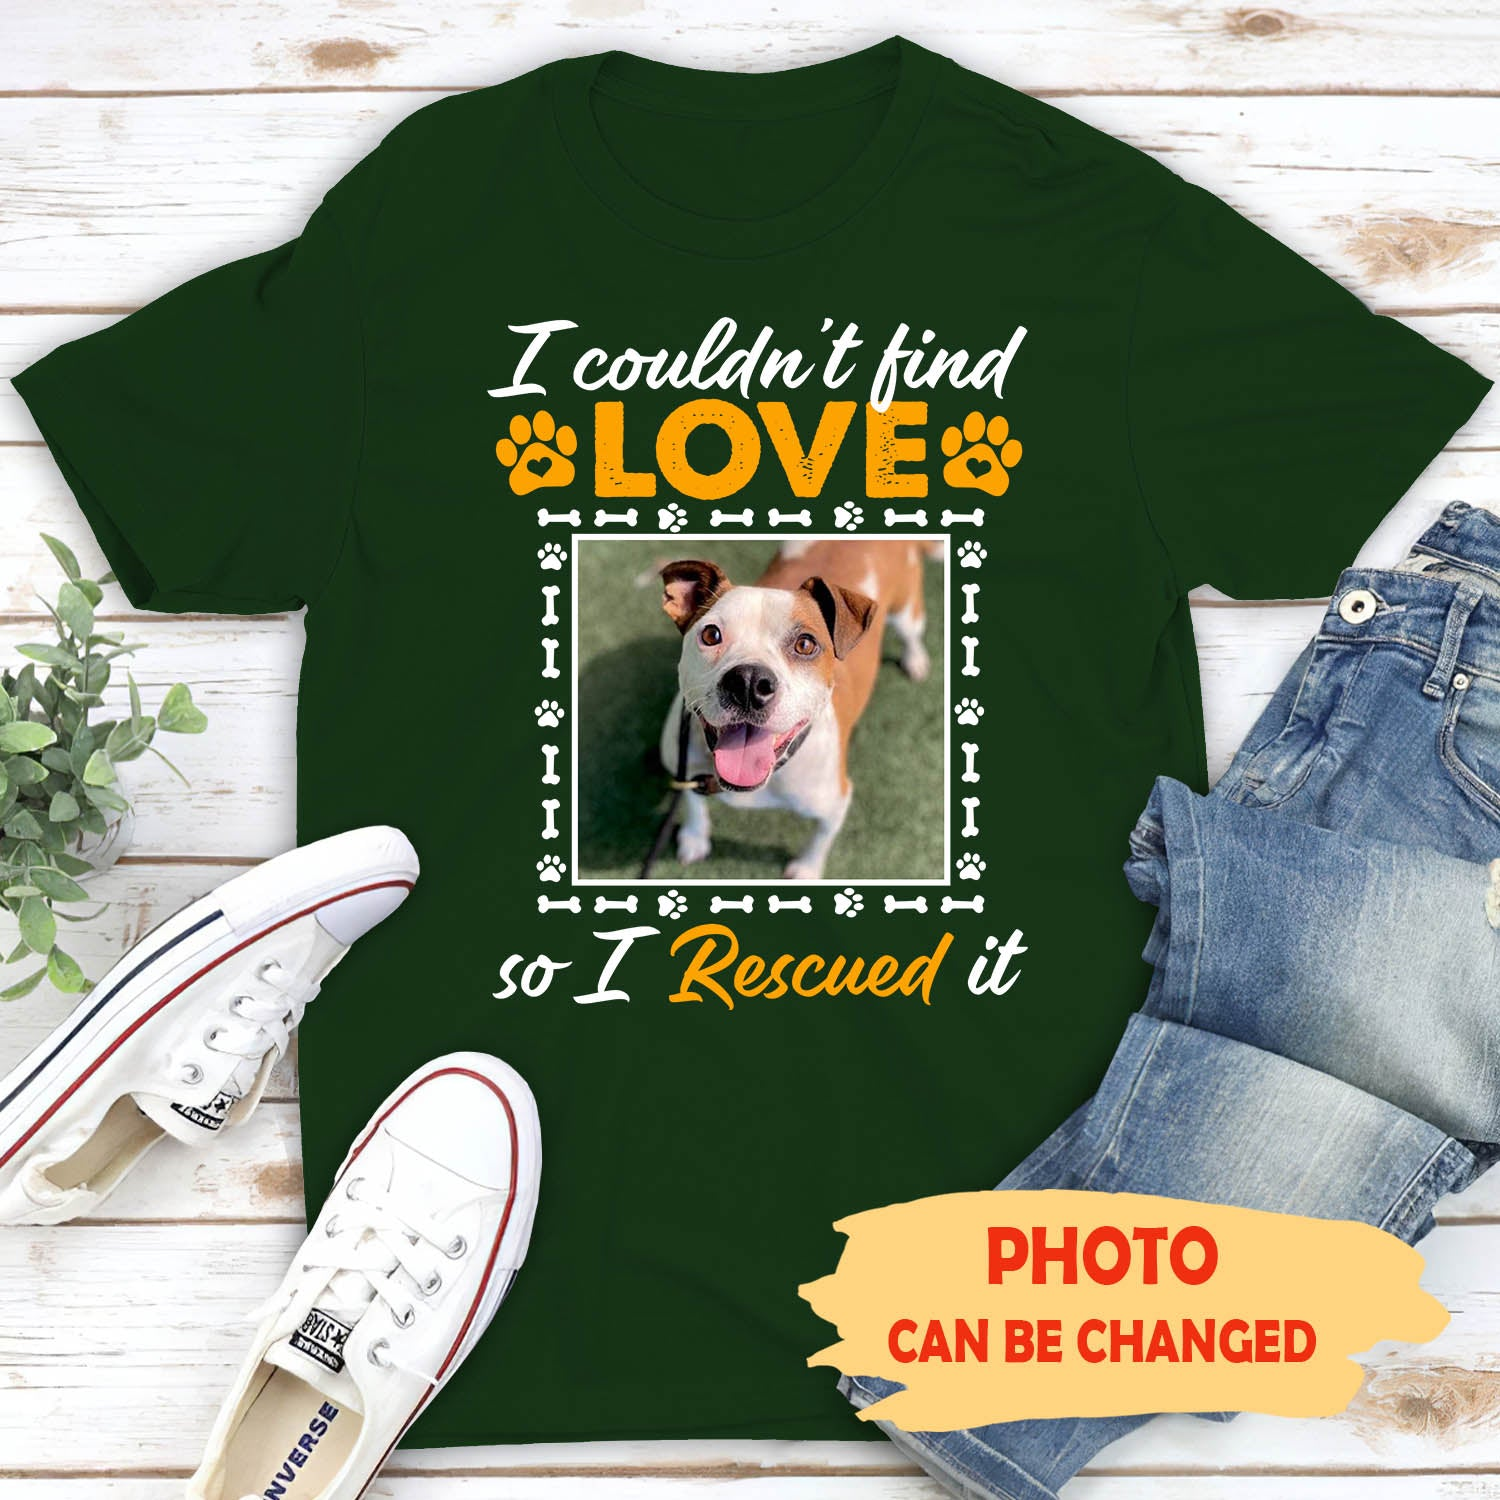 Rescue Love - Personalized Custom Unisex T-shirt